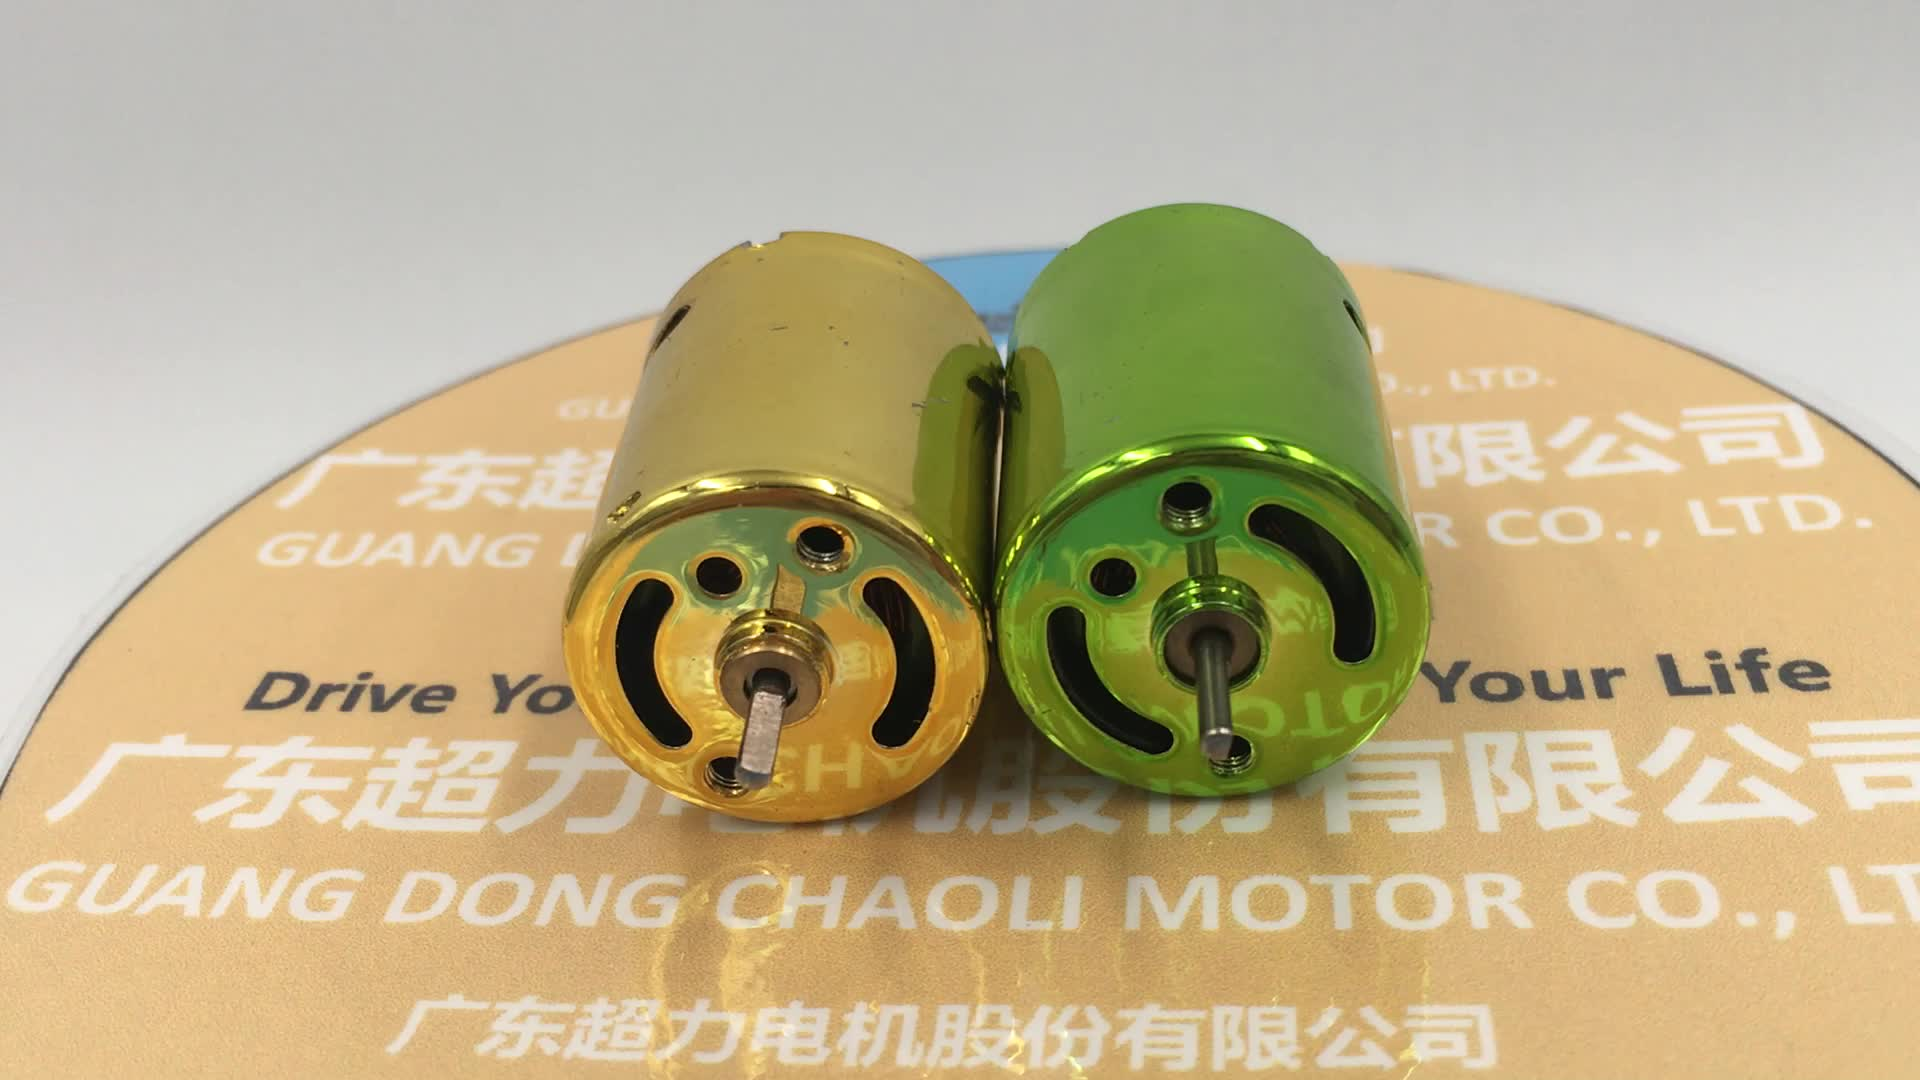 12V High Power DC Motor CL-RK370SD With Nickel Plating For Intelligence Product And Creative Toy